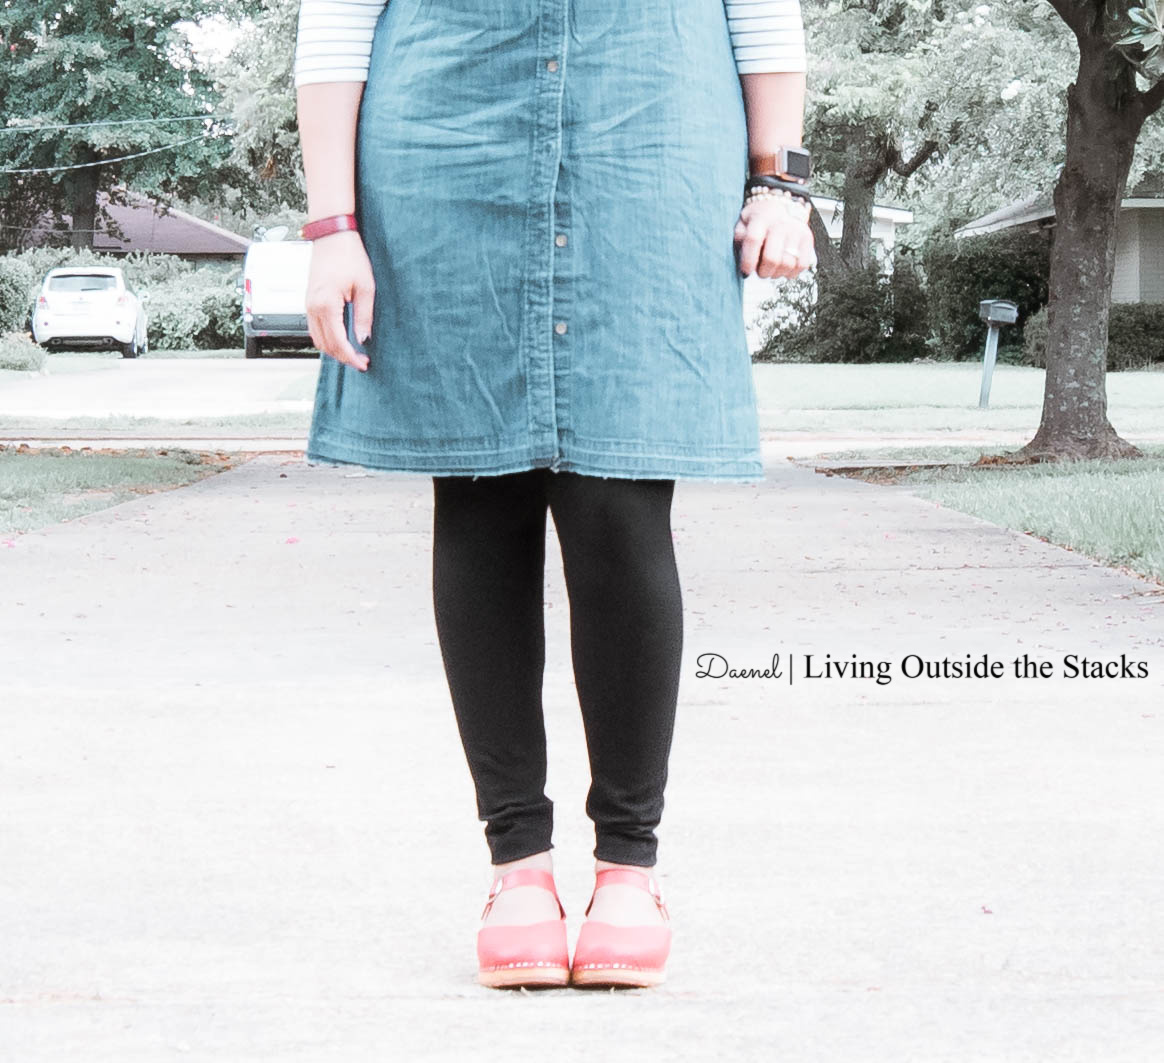 Daenel T {living outside the stacks} Denim Shirt Dress Black and White Striped Tee Black Leggings and Red Clogs